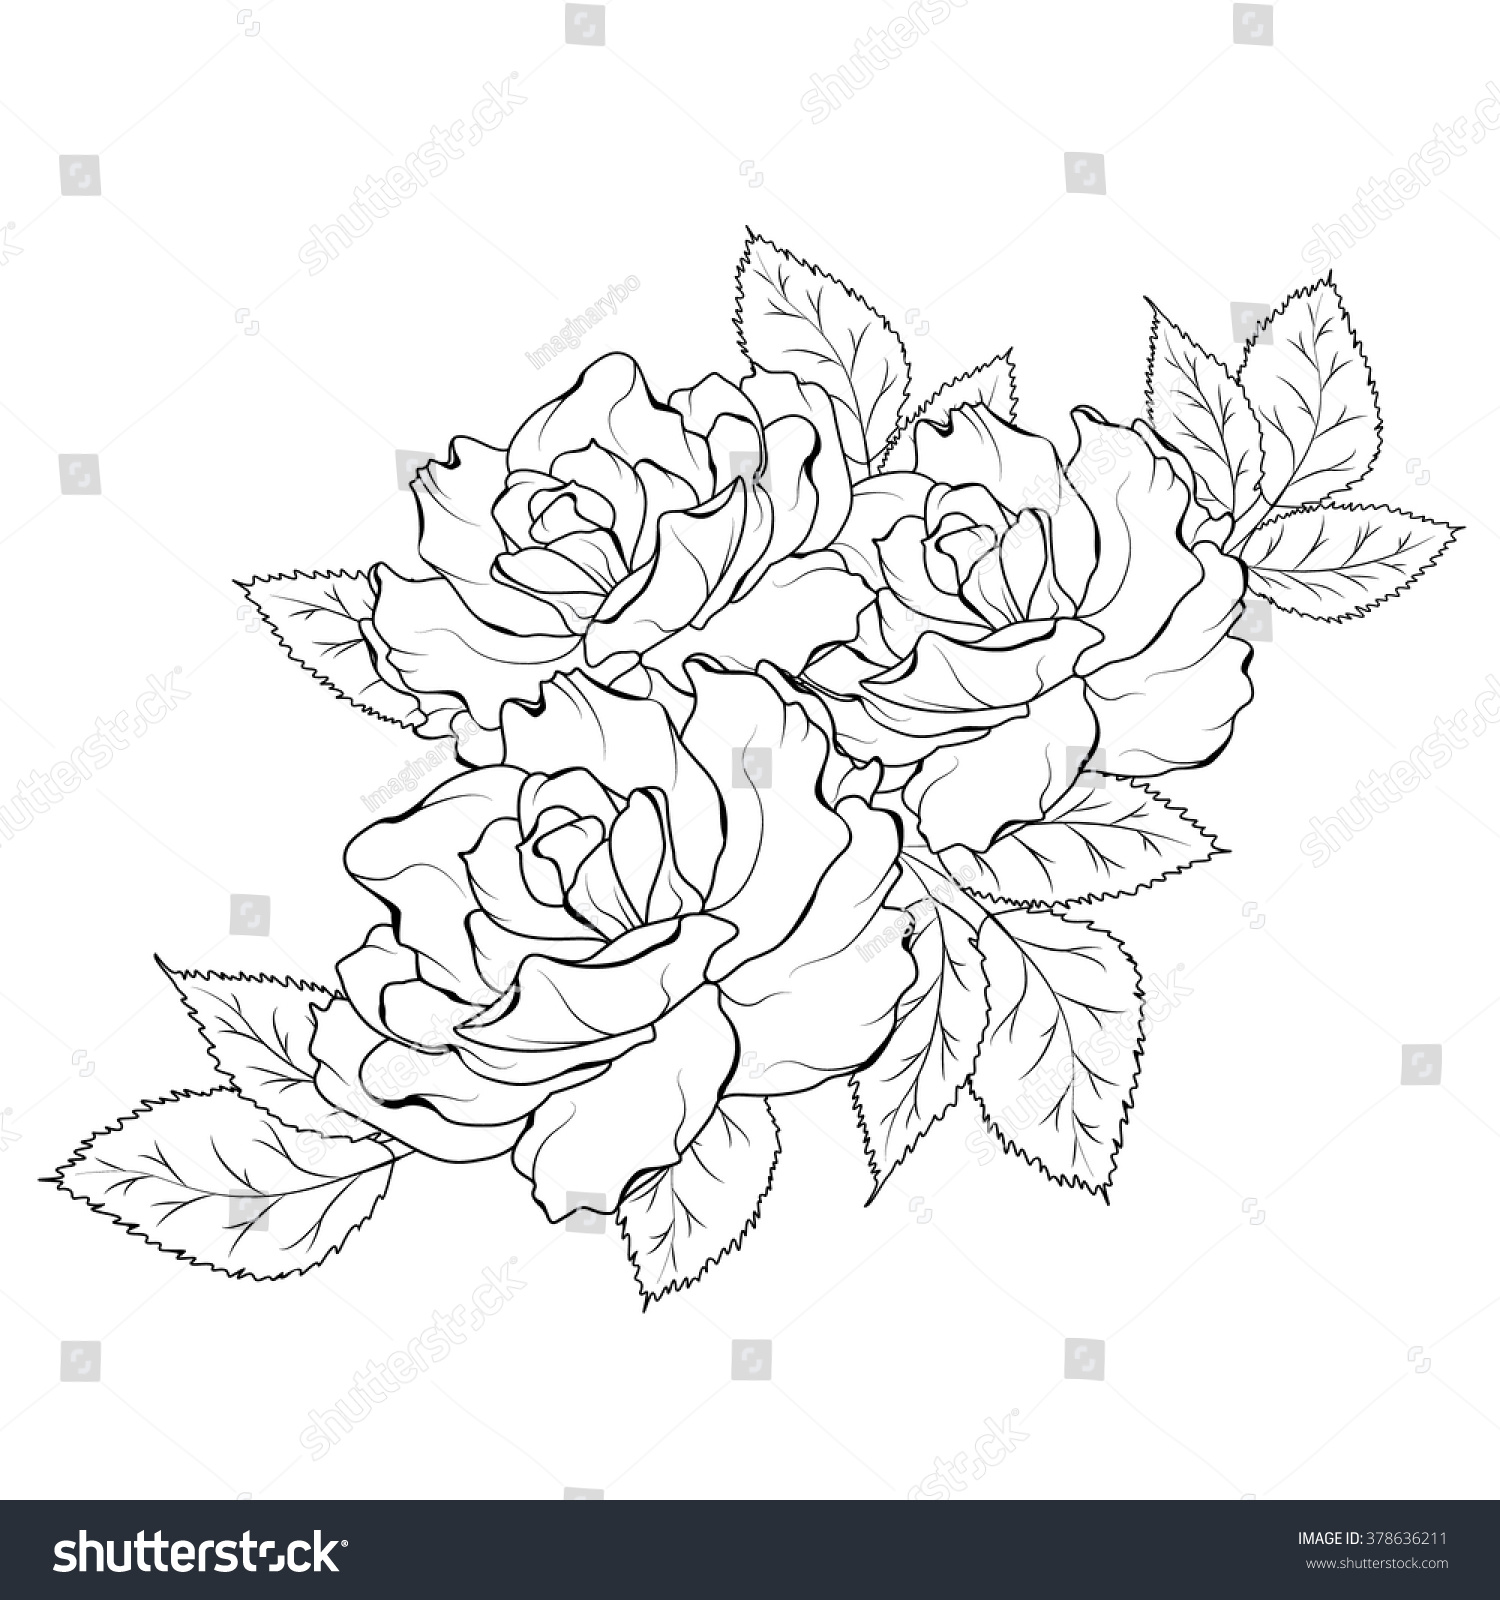 Royalty free isolated rose flowers bouquet detailed 378636211 isolated rose flowers bouquet detailed outline black and white vector illustration 378636211 izmirmasajfo